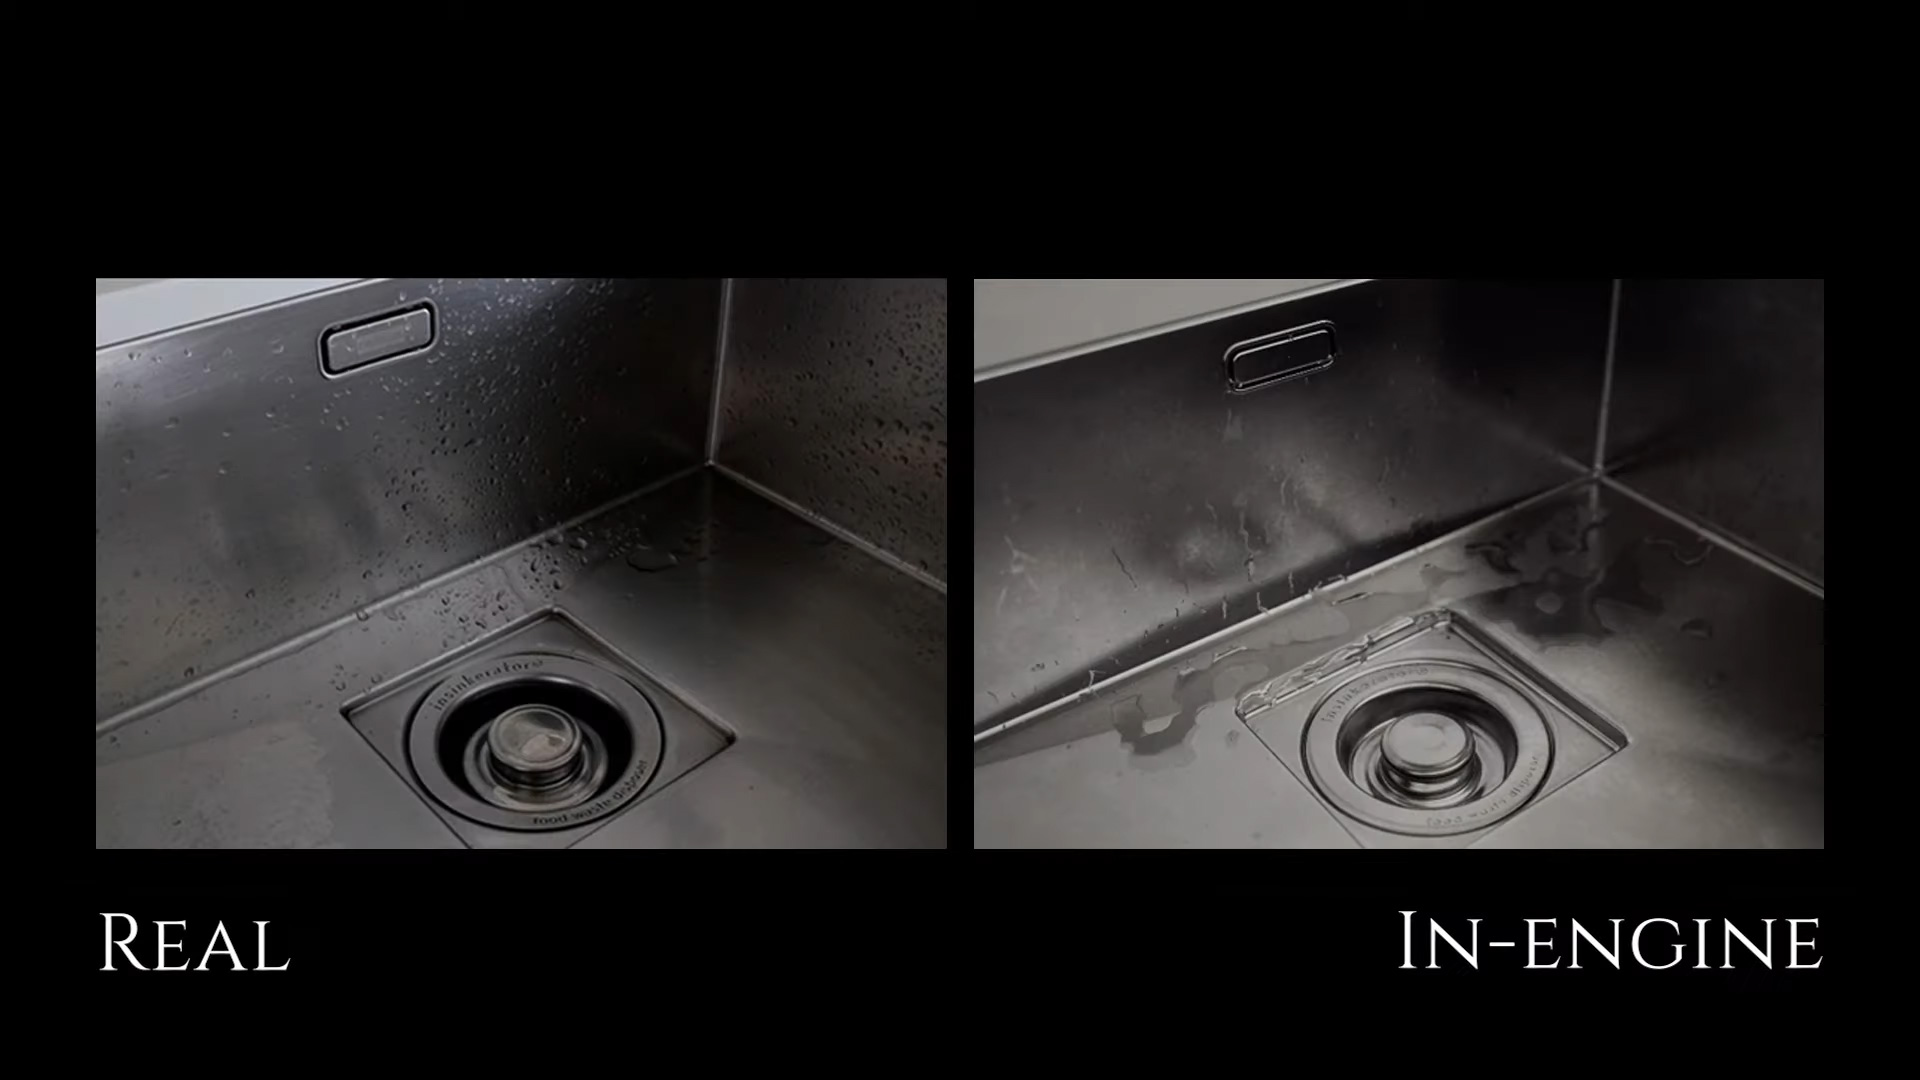 Project: Mara in-engine sink